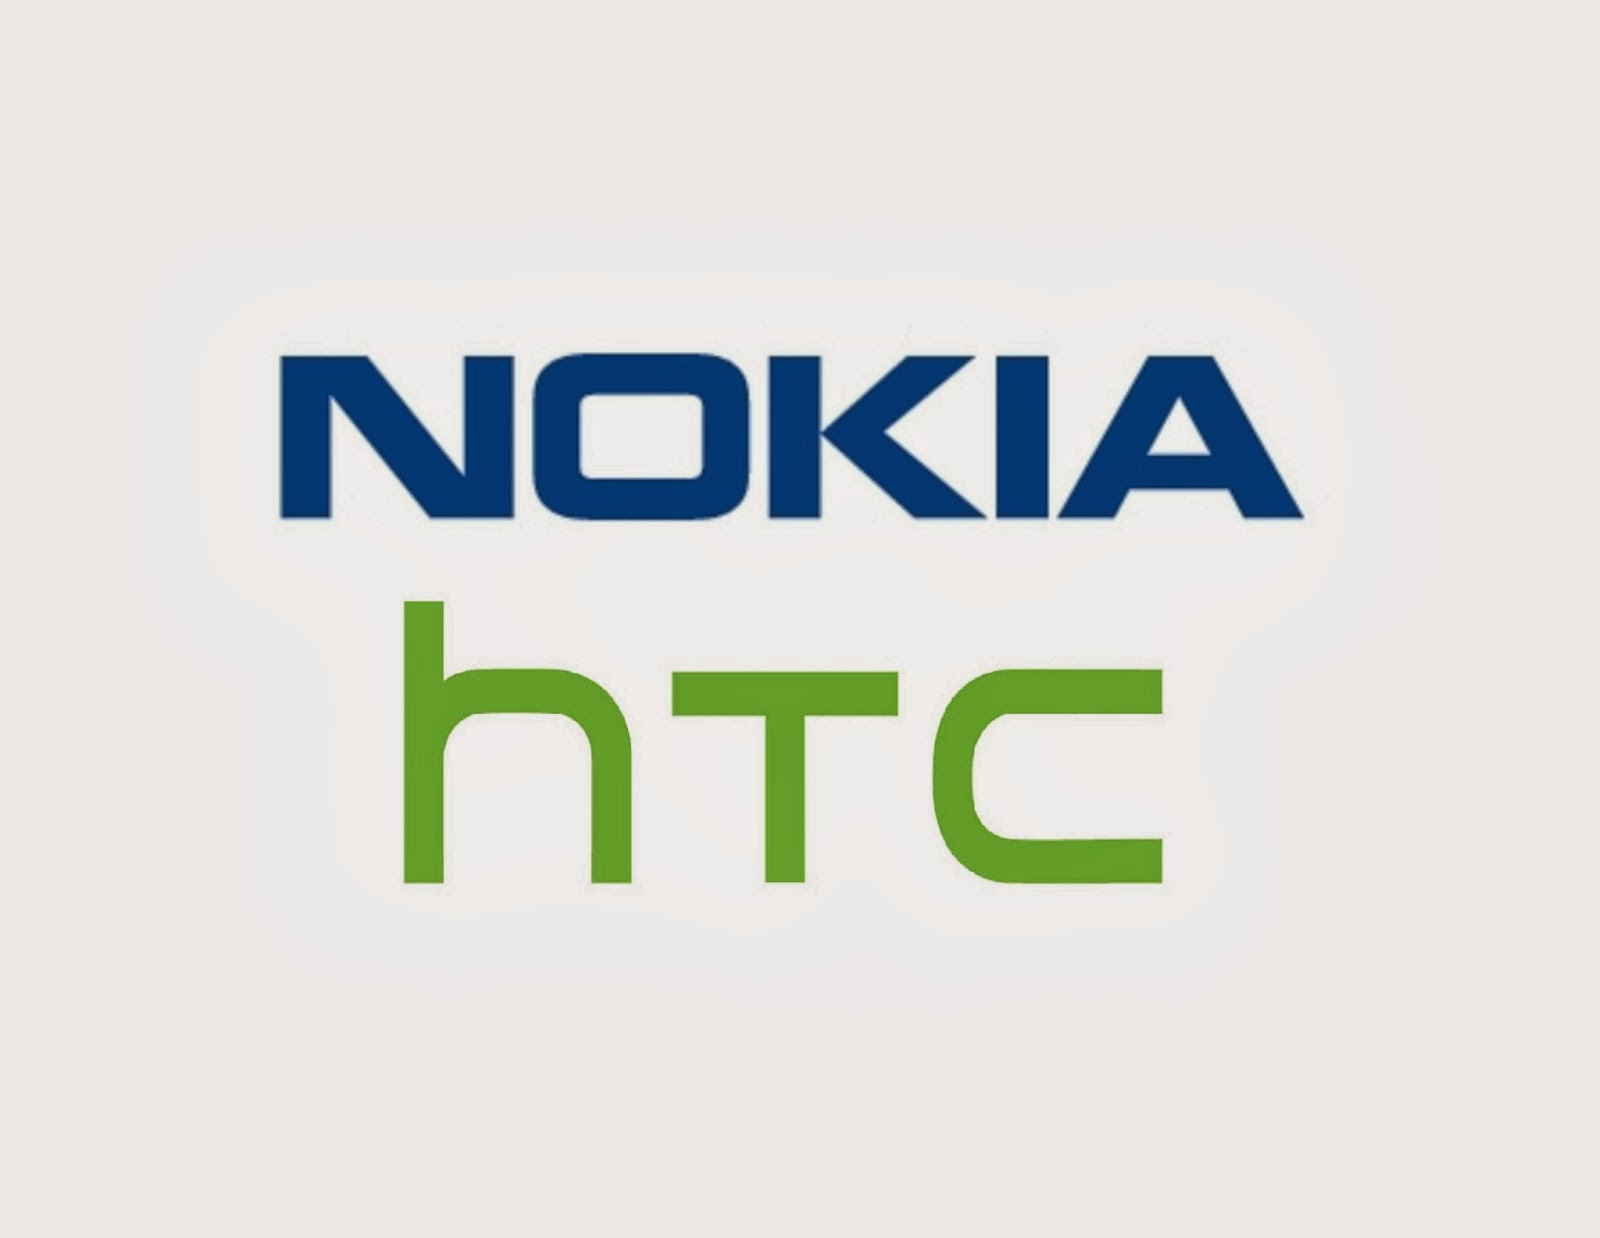 All patent litigation between Nokia and HTC dismissed, both signed a patent and technology collaboration agreement